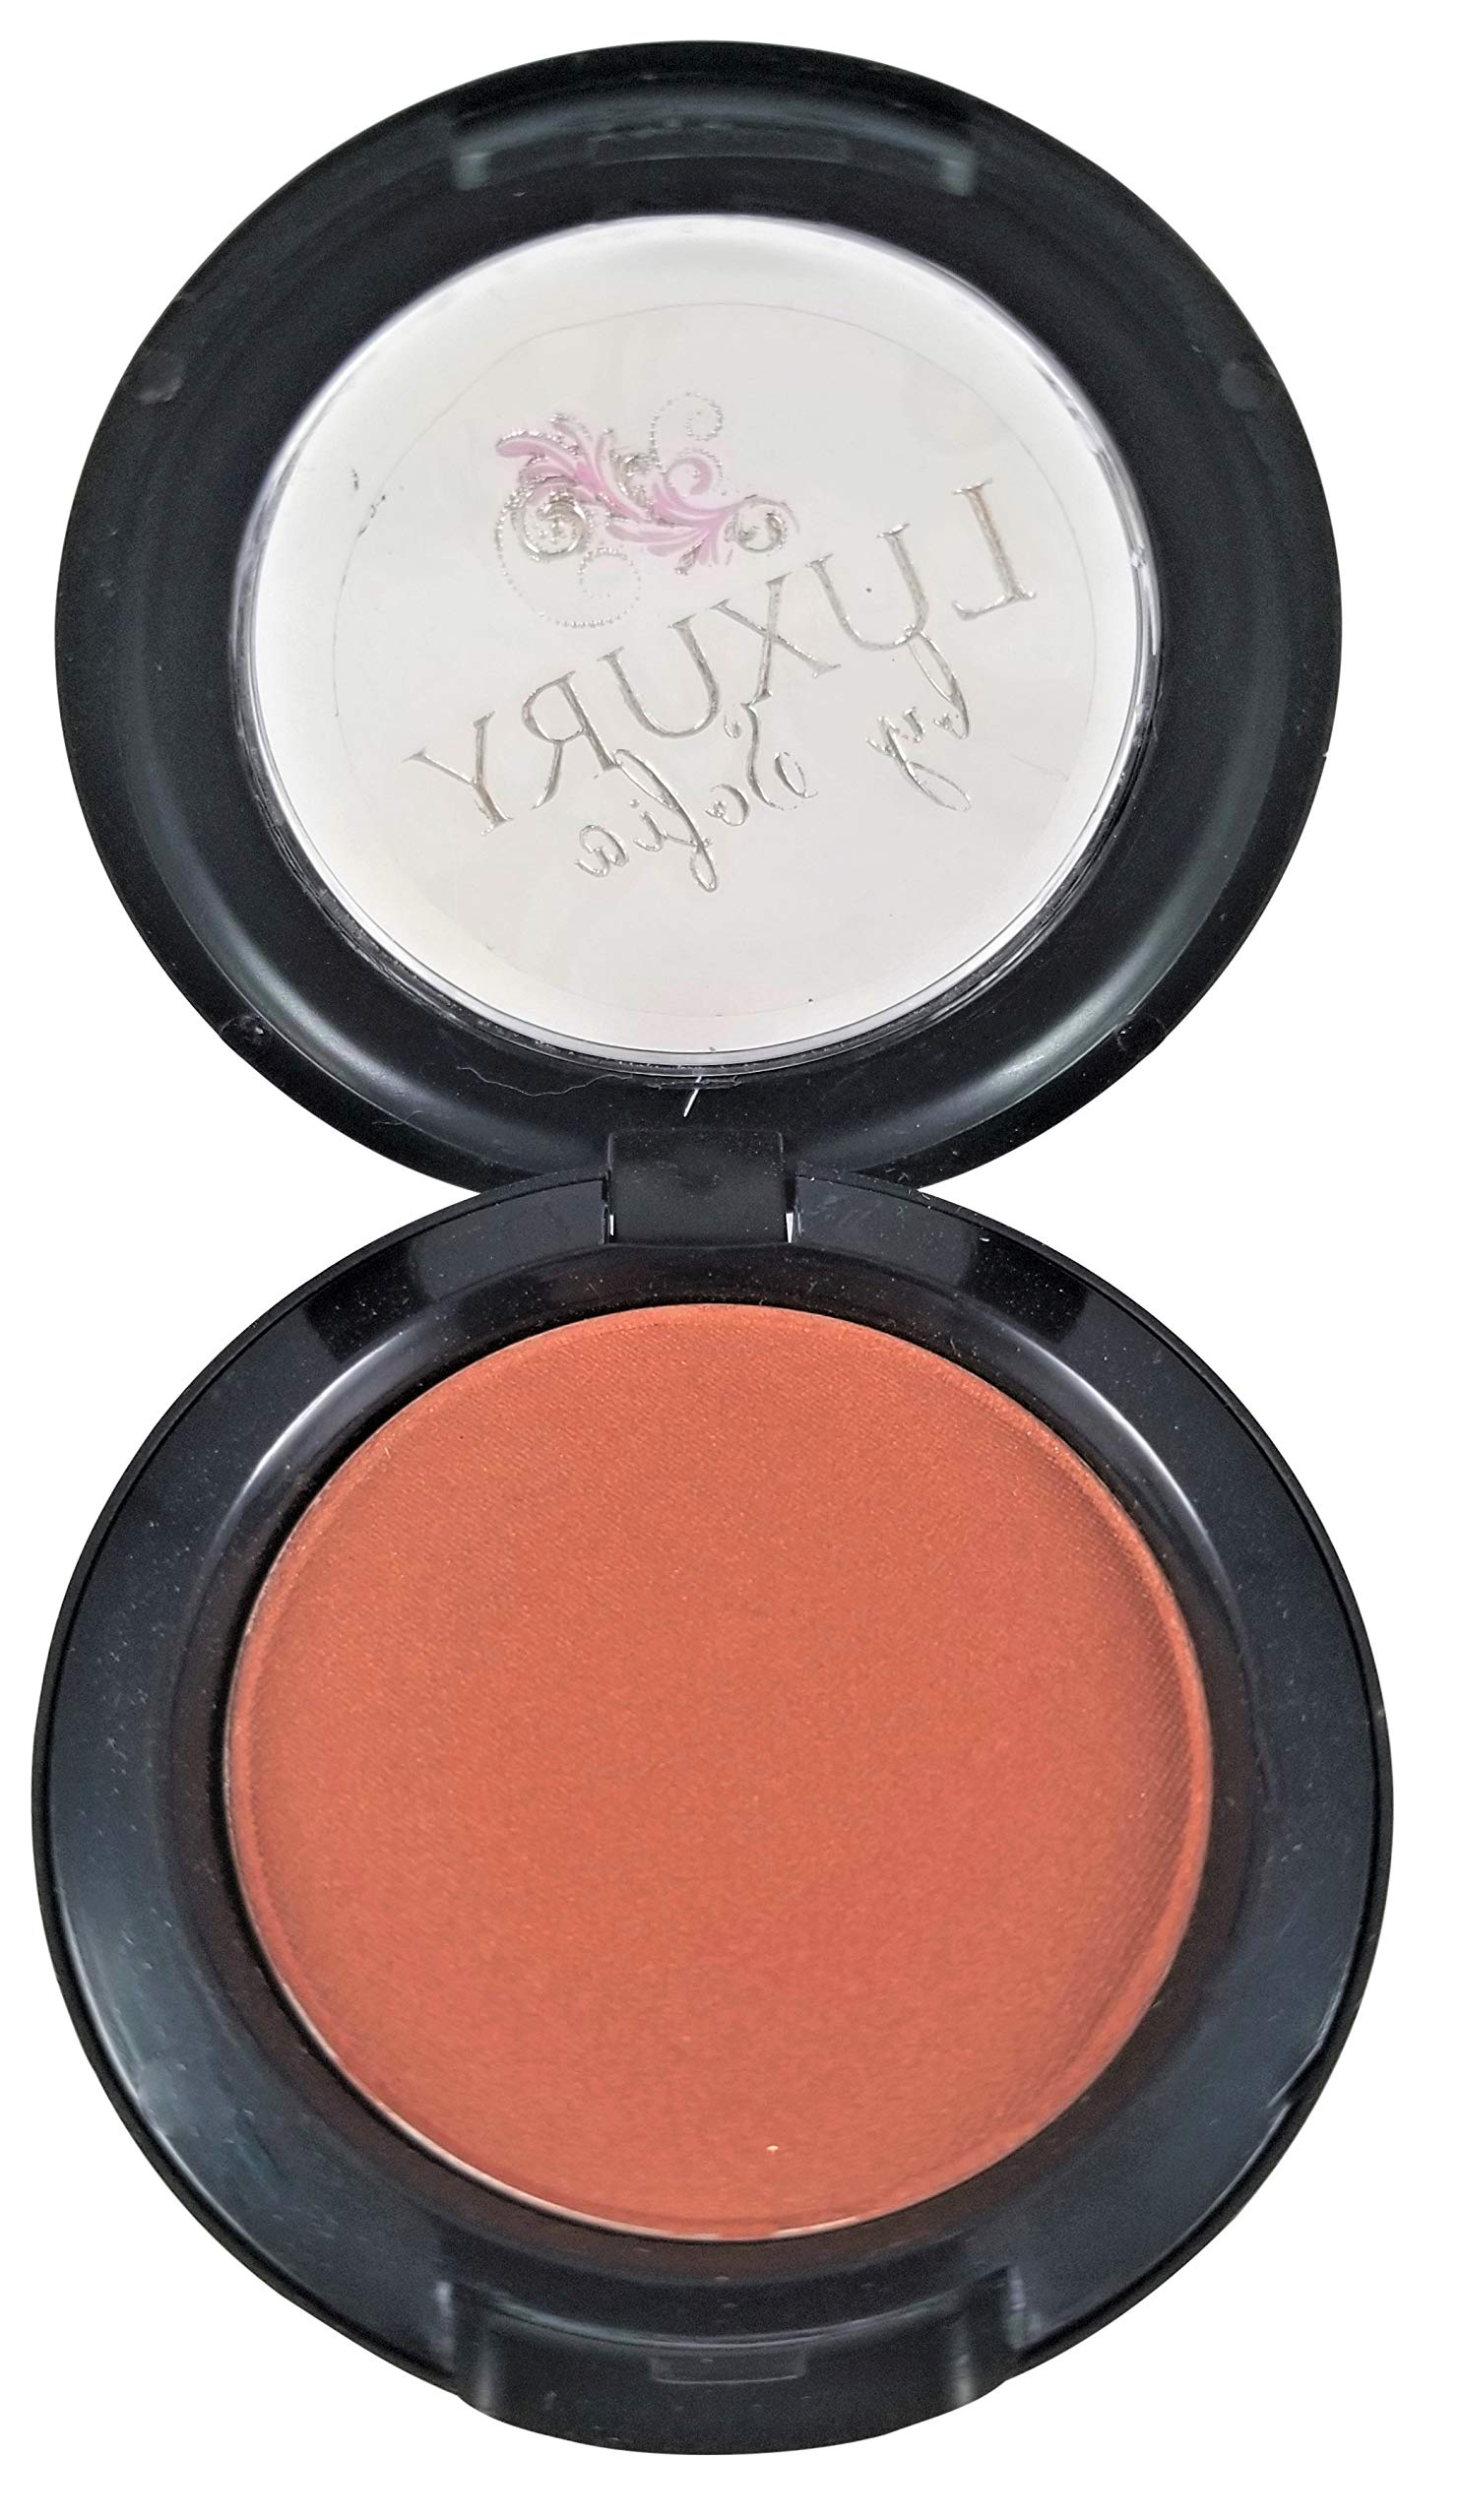 Luxury By Sofia All-Natural Blush | Organic &Natural Ingredients, Highly Pigmented, Smooth Blush Lasts All Day | Highlight Your Face With A Micro-Slip Powder That Glides On The Skin (Ginger Brown)